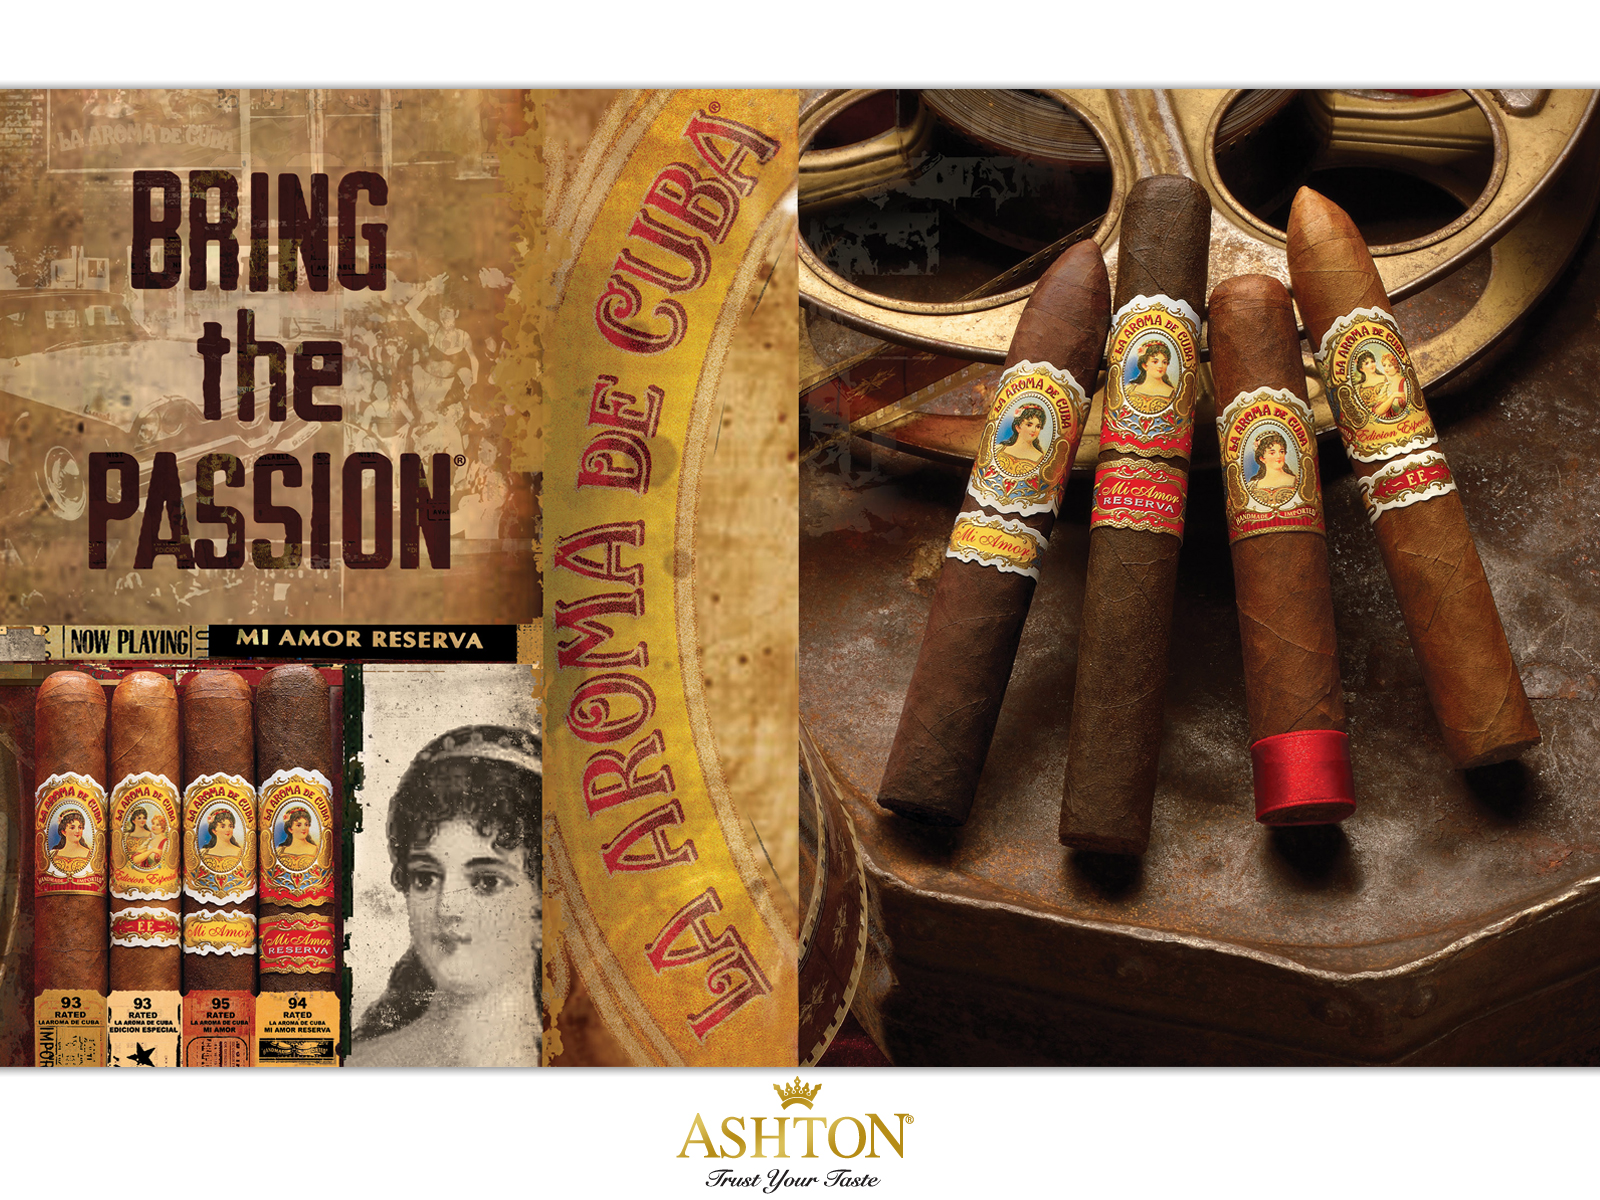 ashton_cigars_advertising_campaign_cigarmonkeys_3.jpg